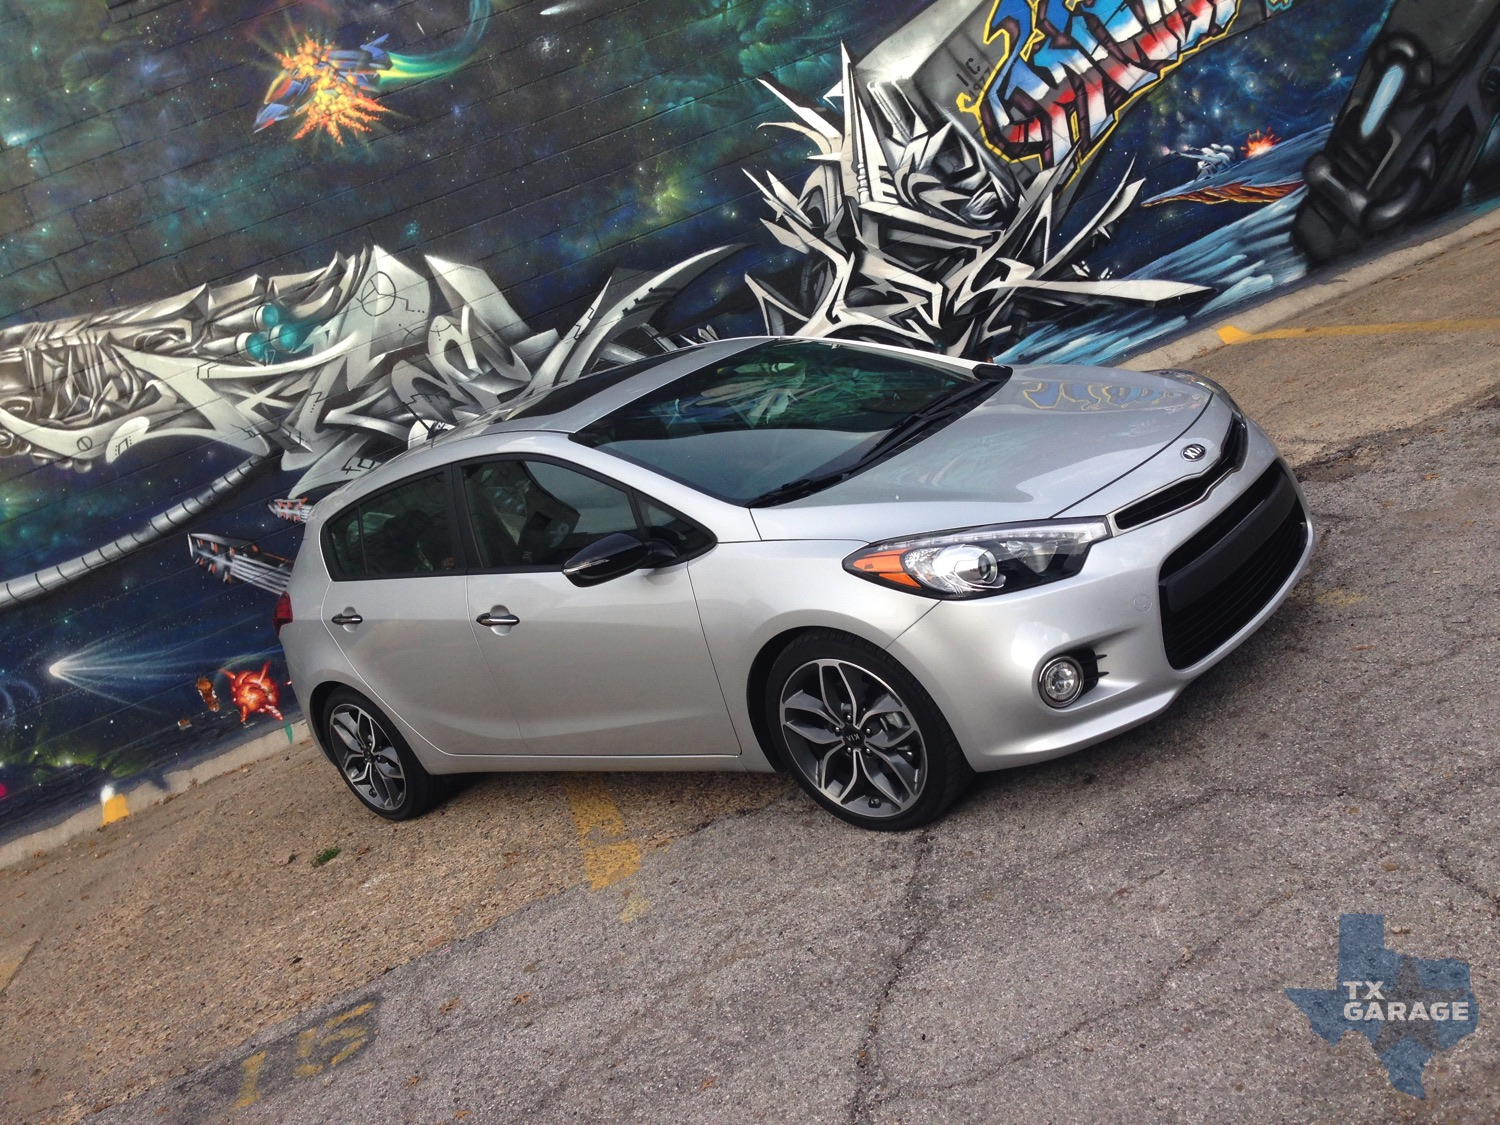 our week with the 2015 kia forte sx 5 door named sub compact car of texas txgarage. Black Bedroom Furniture Sets. Home Design Ideas